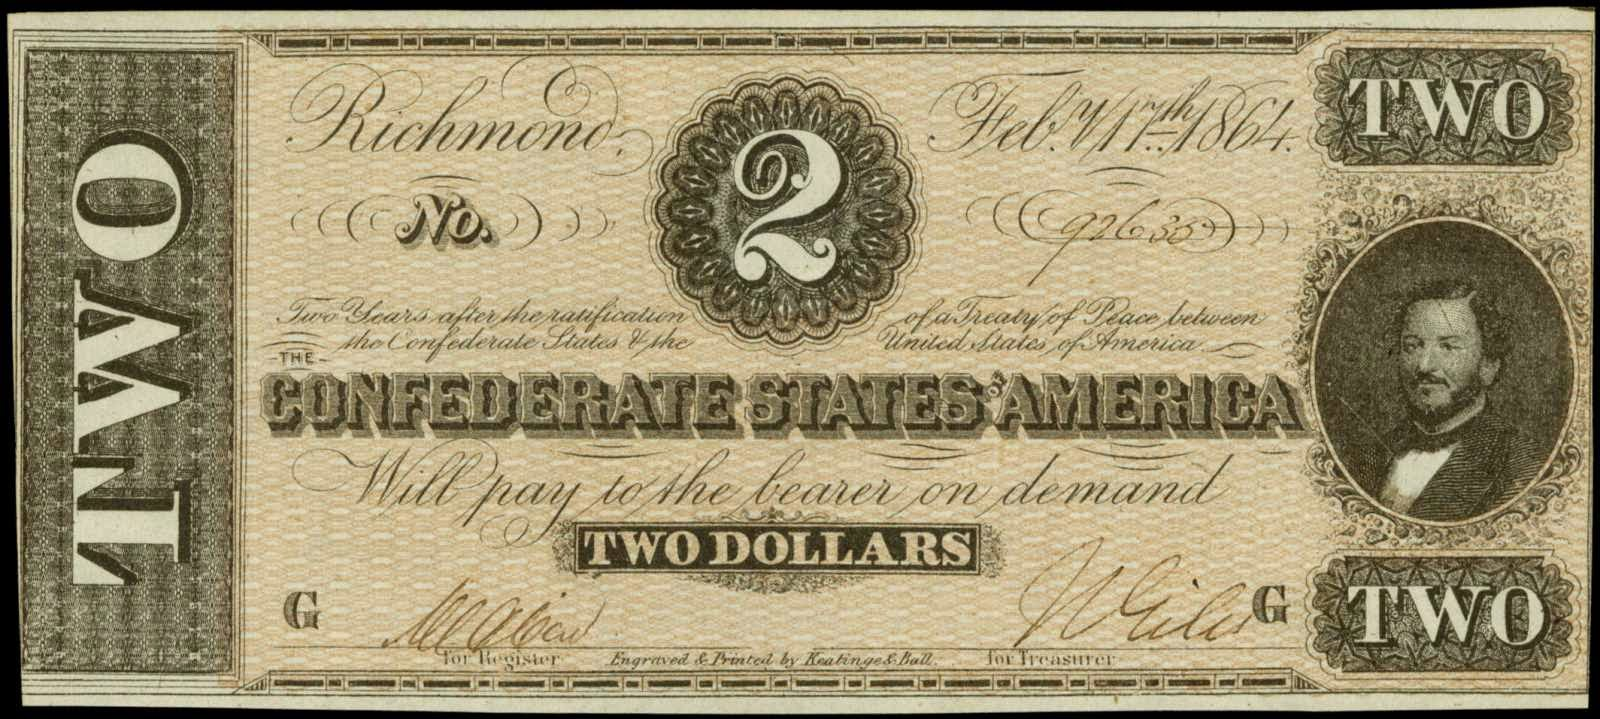 Confederate States Currency 2 Dollar Bill 1864 Civil War Note